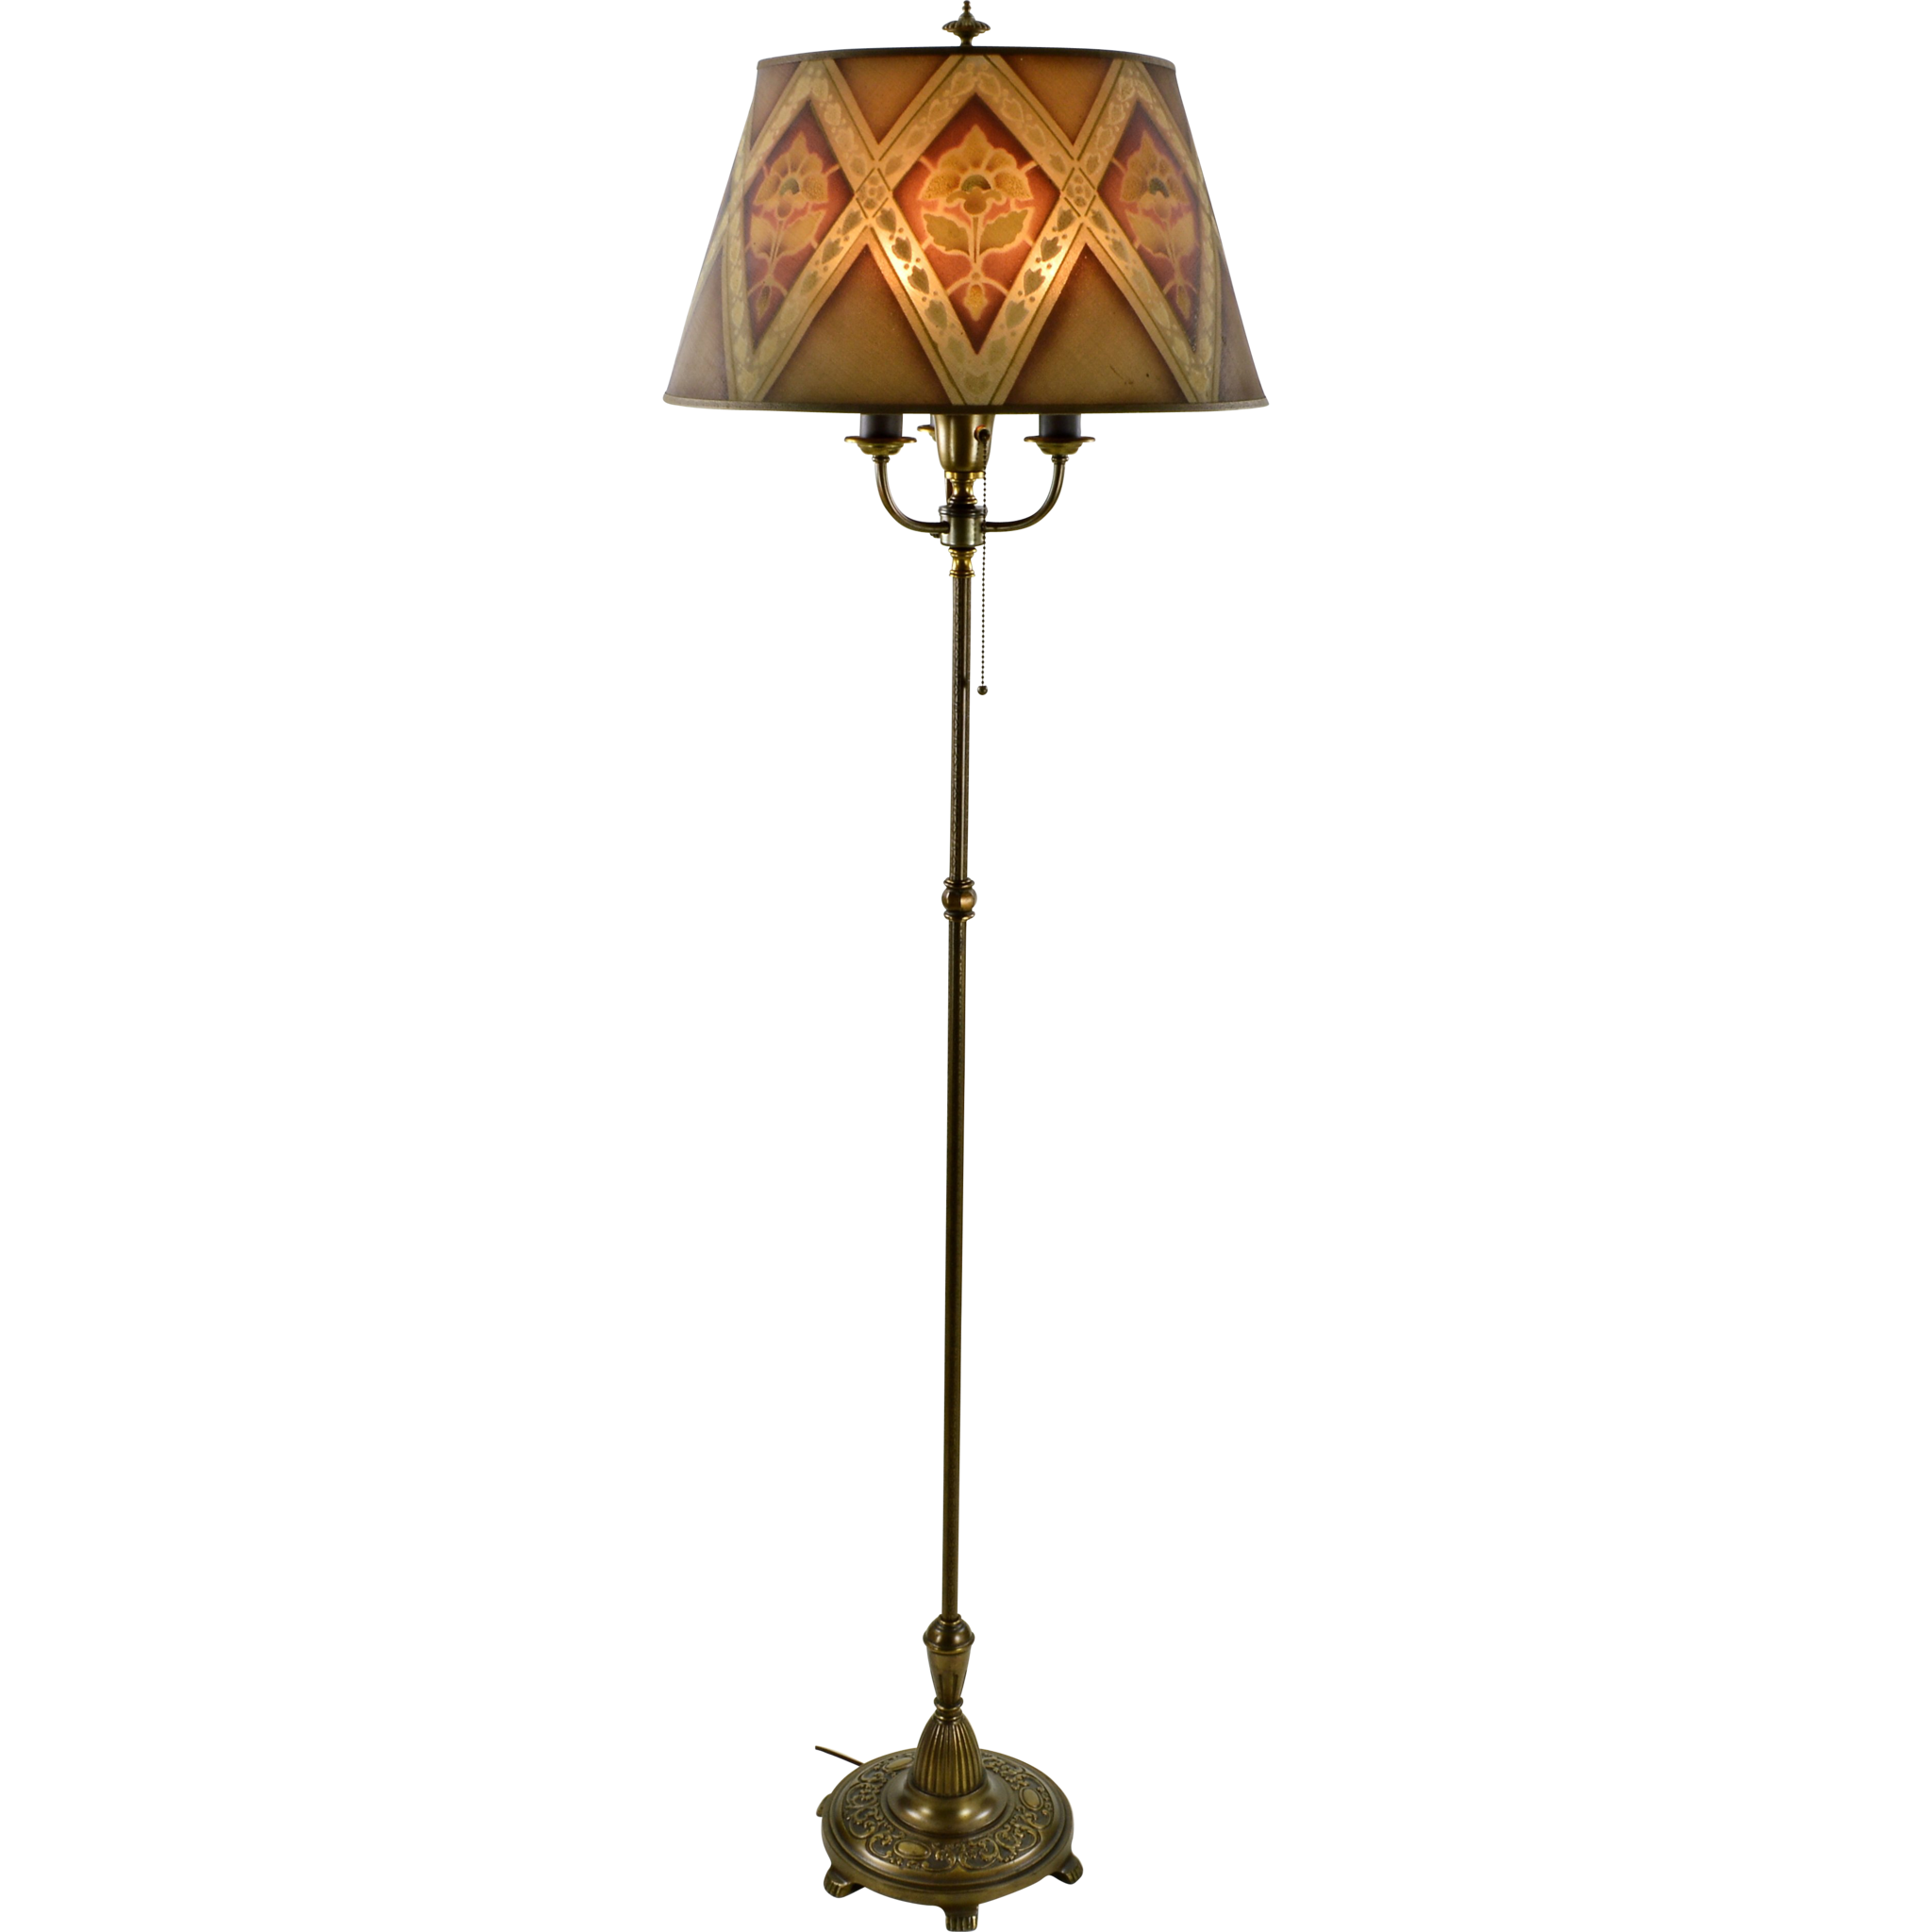 old lamp png